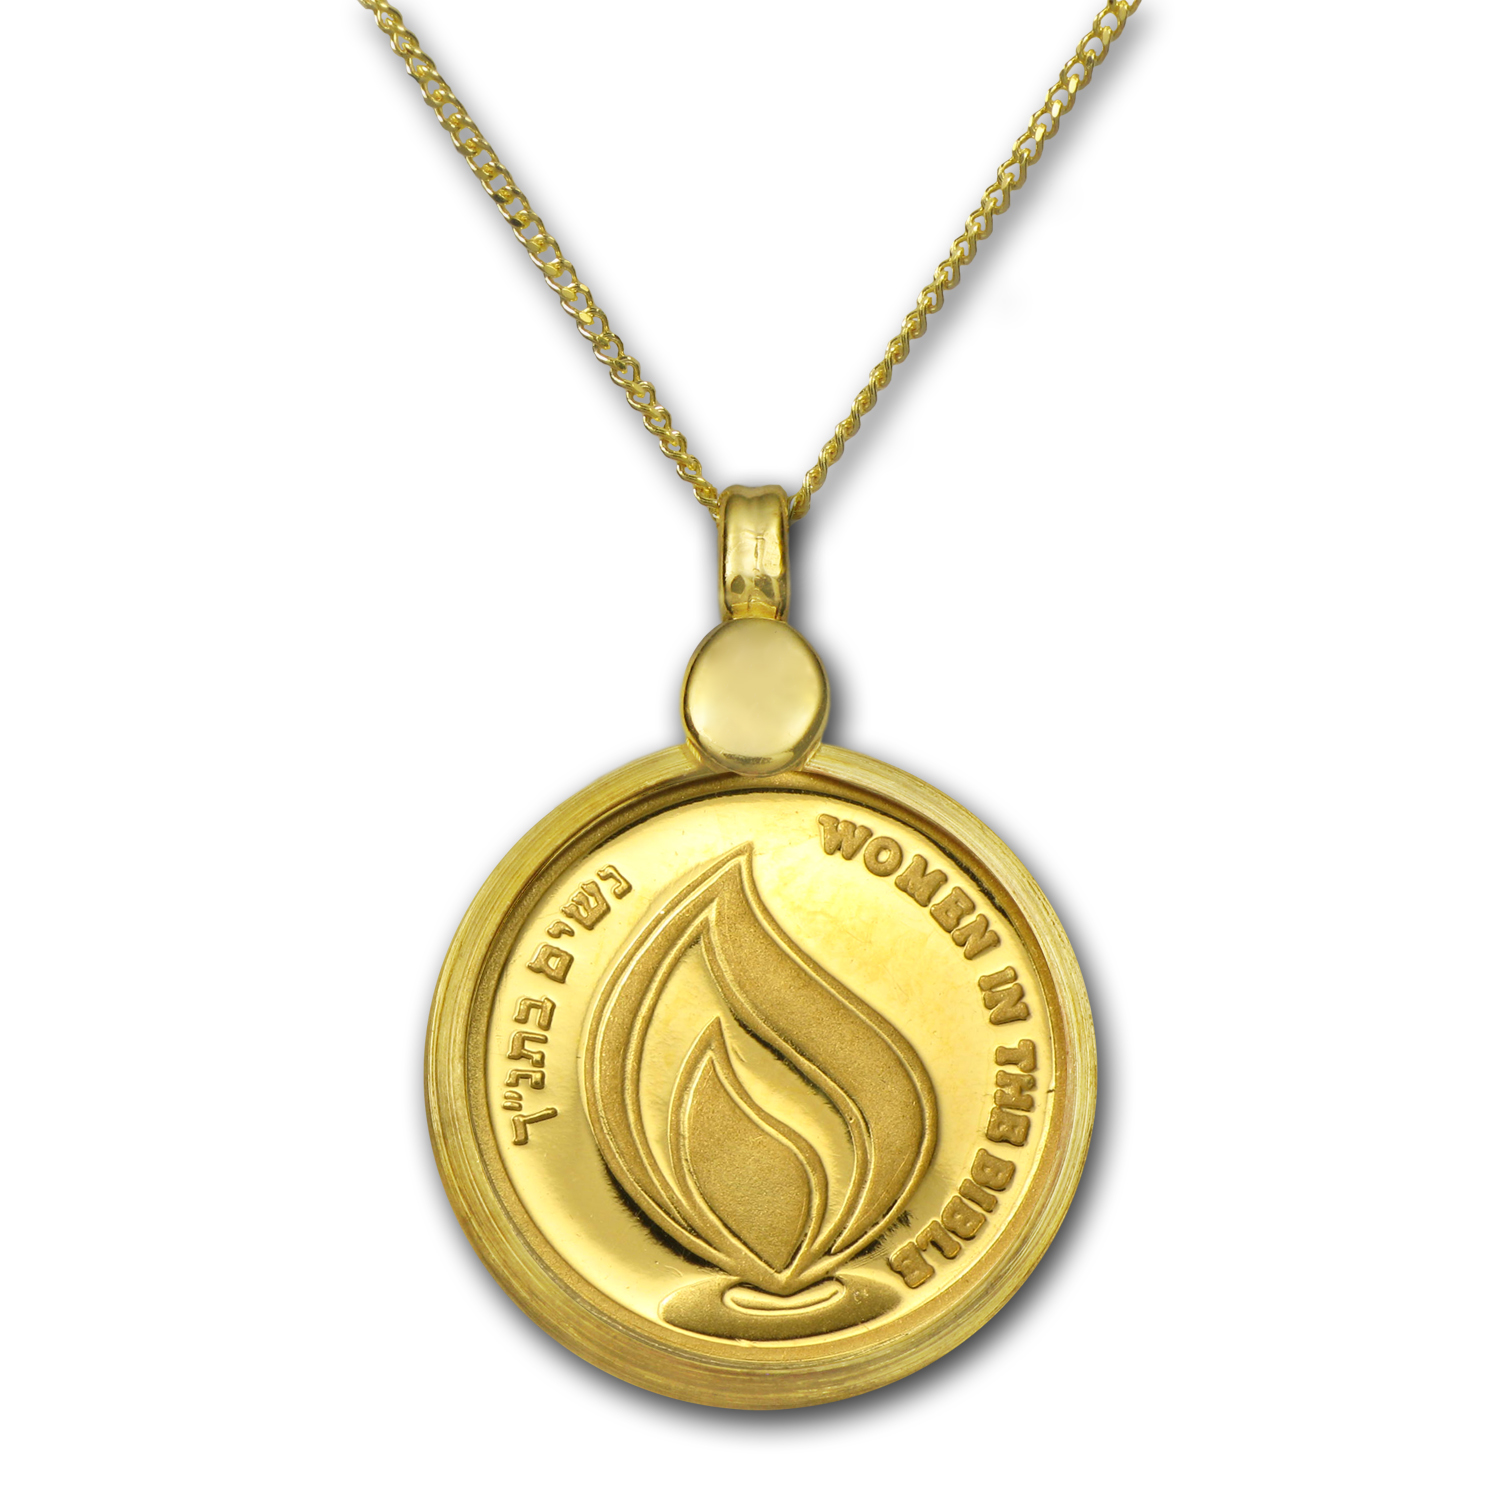 14K Gold Israel Sarah Necklace (AGW .0729 oz)